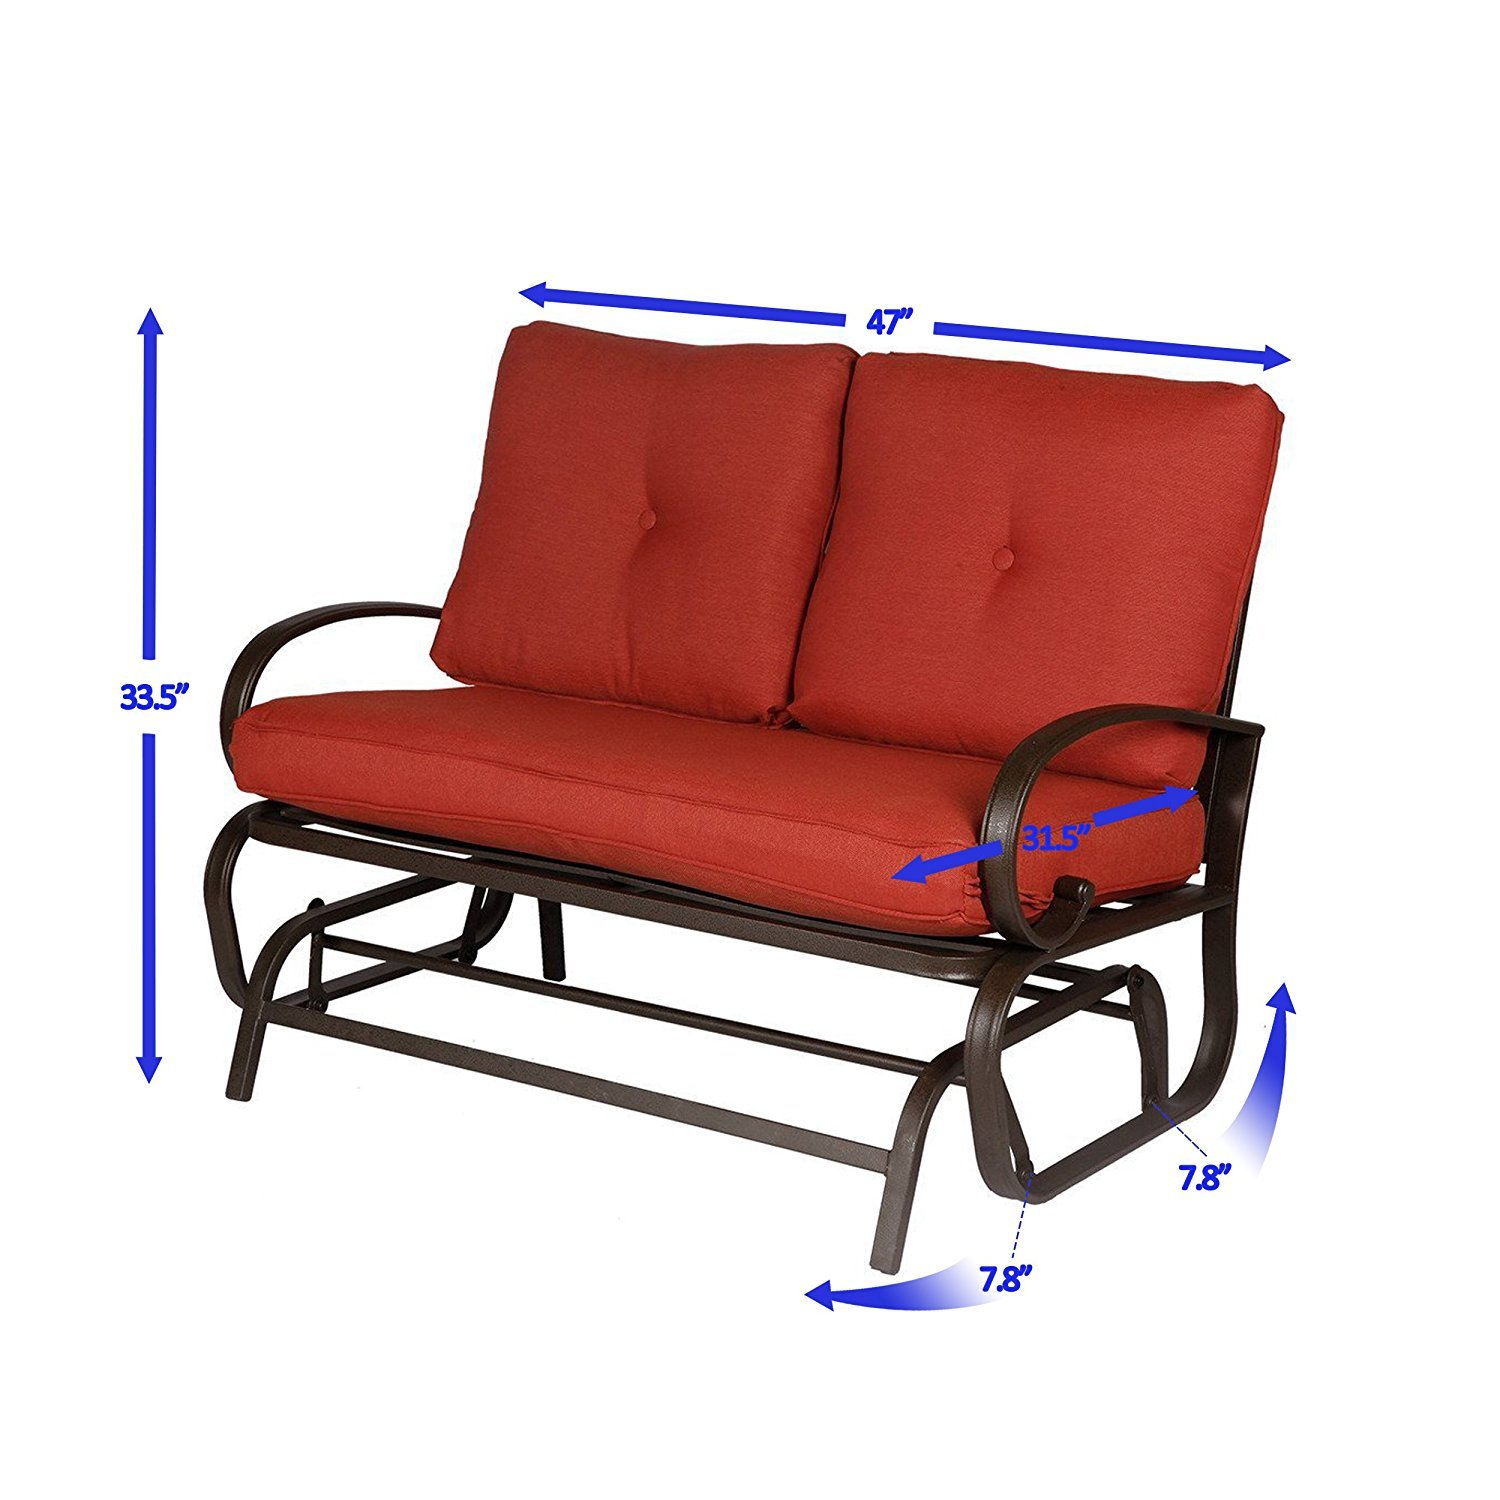 Outdoor Patio Loveseat Furniture Garden Yard Lounge Glider Bench Rocking Chair